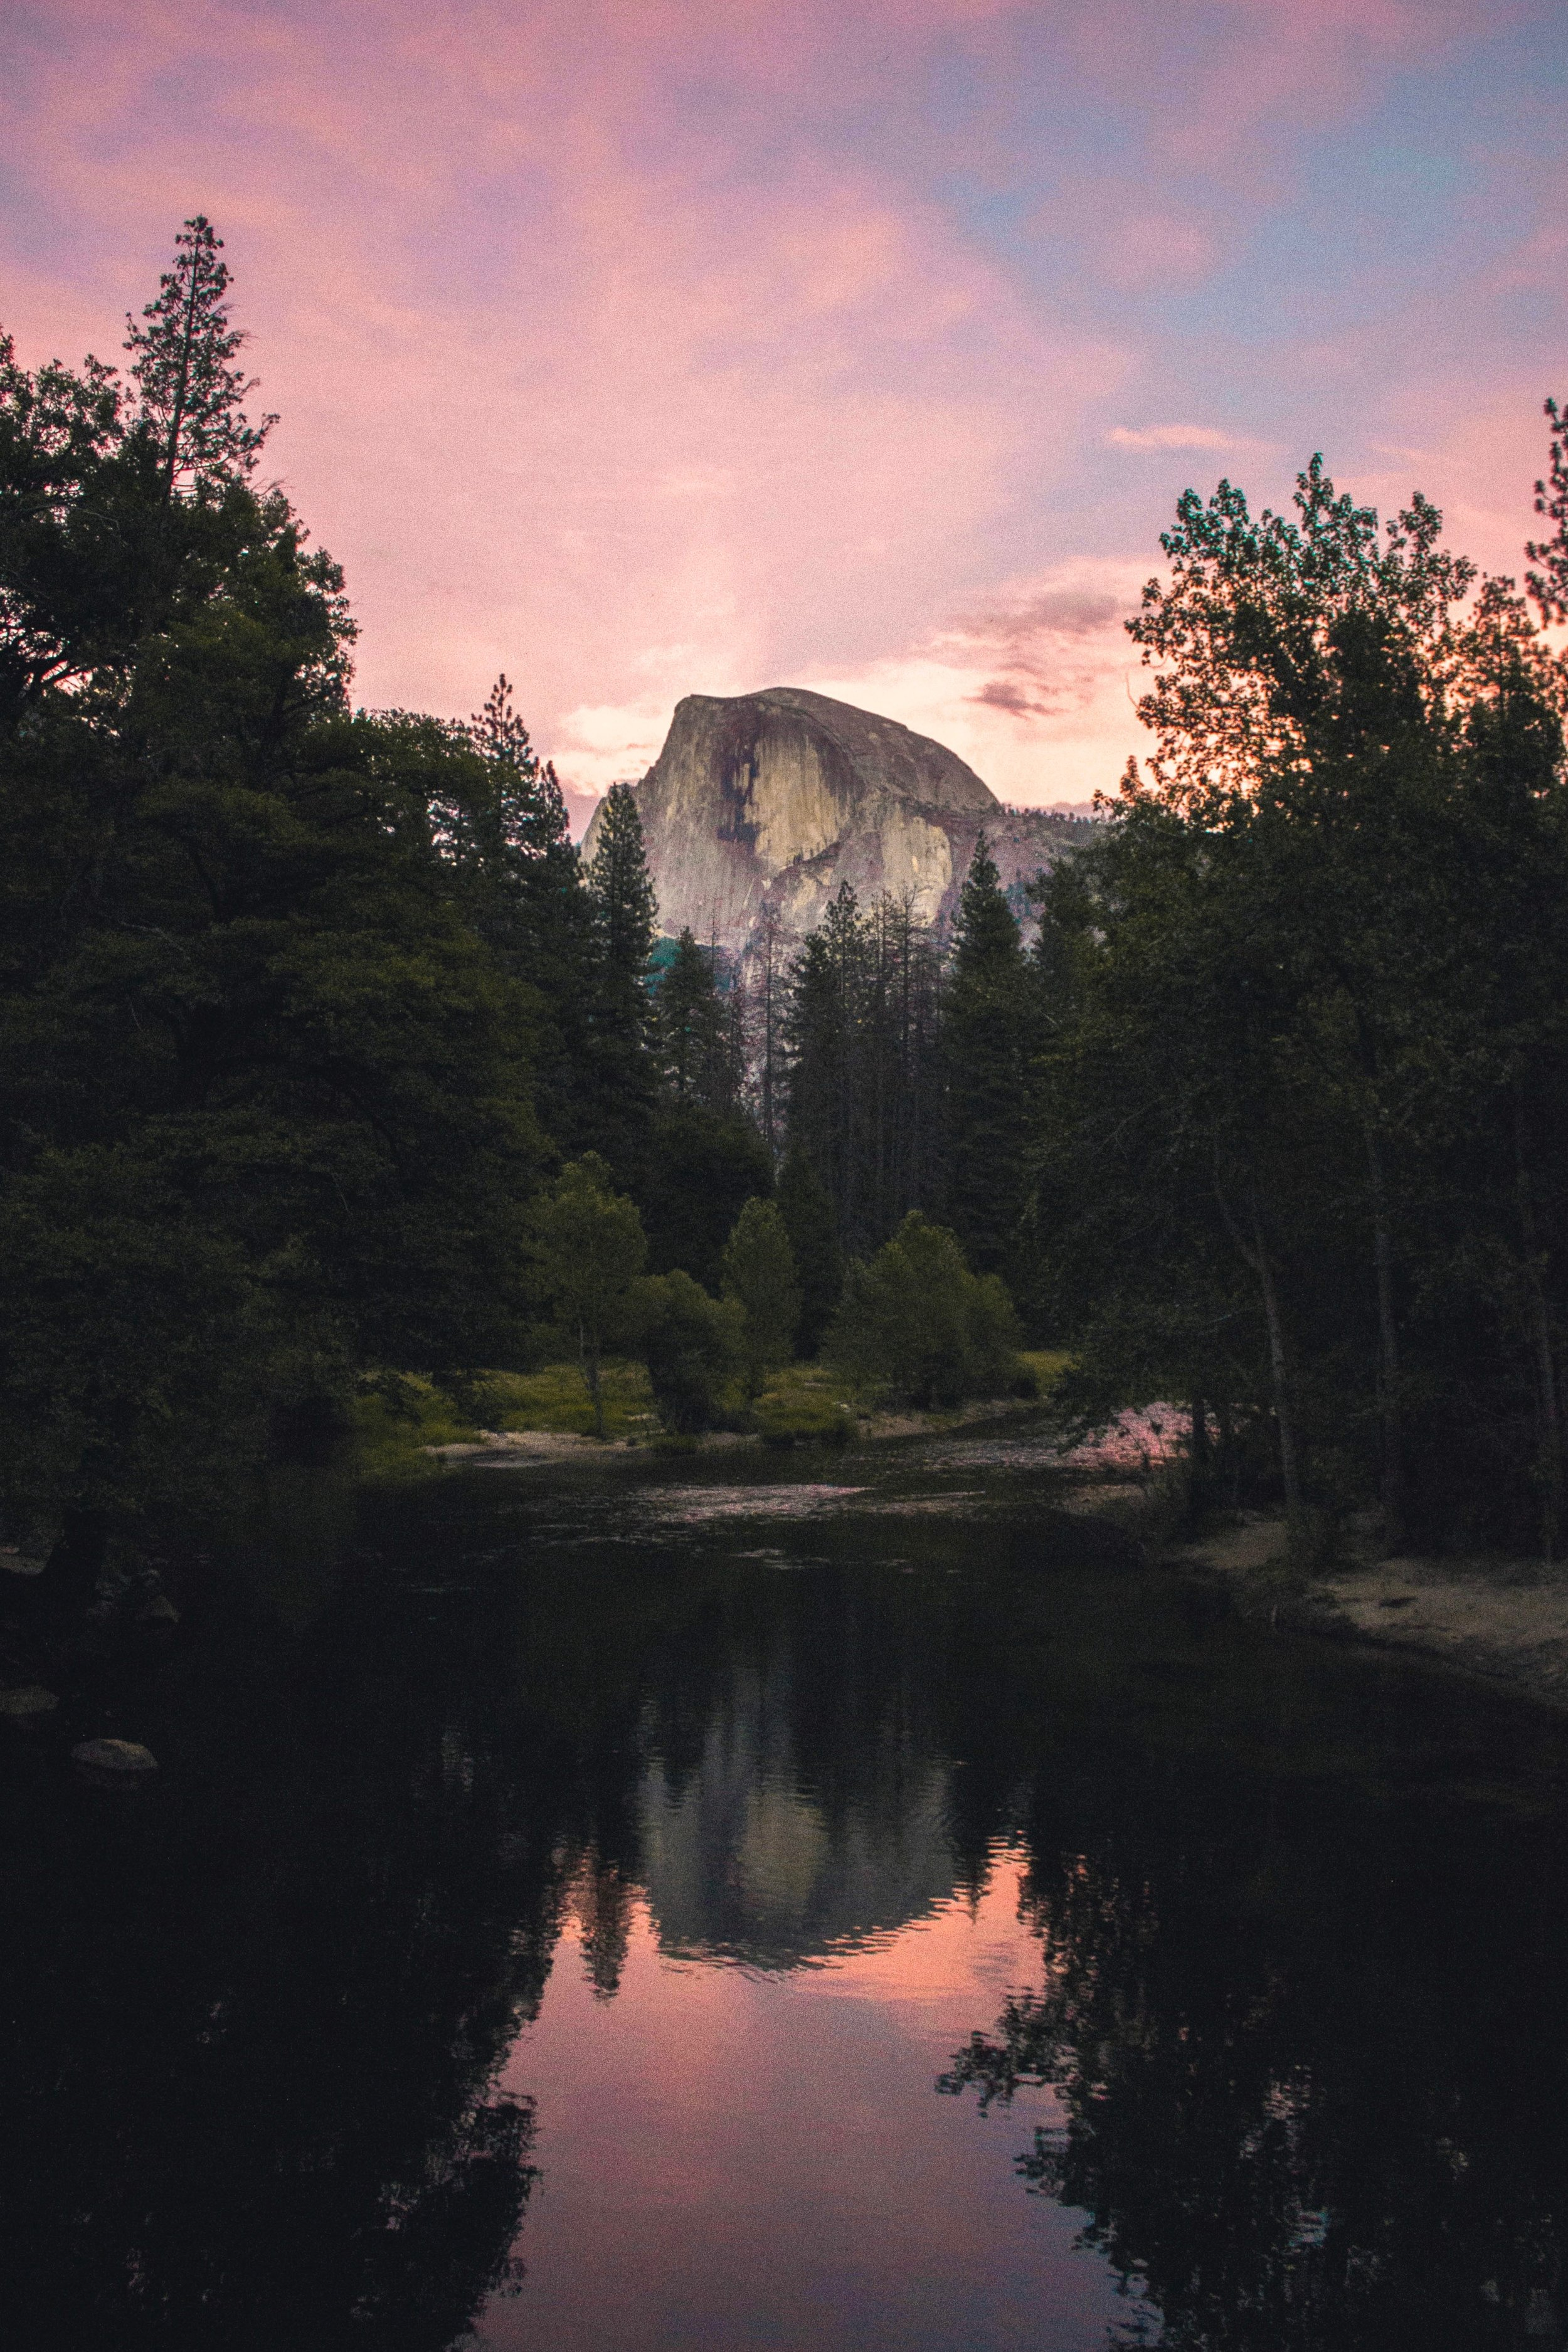 Yosemite One Way or Round Trip from San Francisco - Going up in the morning a comfortable train ride from Oakland / Emeryville to Merced takes about 3 hours and then YARTS motor coach to Yosemite Valley takes about 2 hrs and 15 minutes.